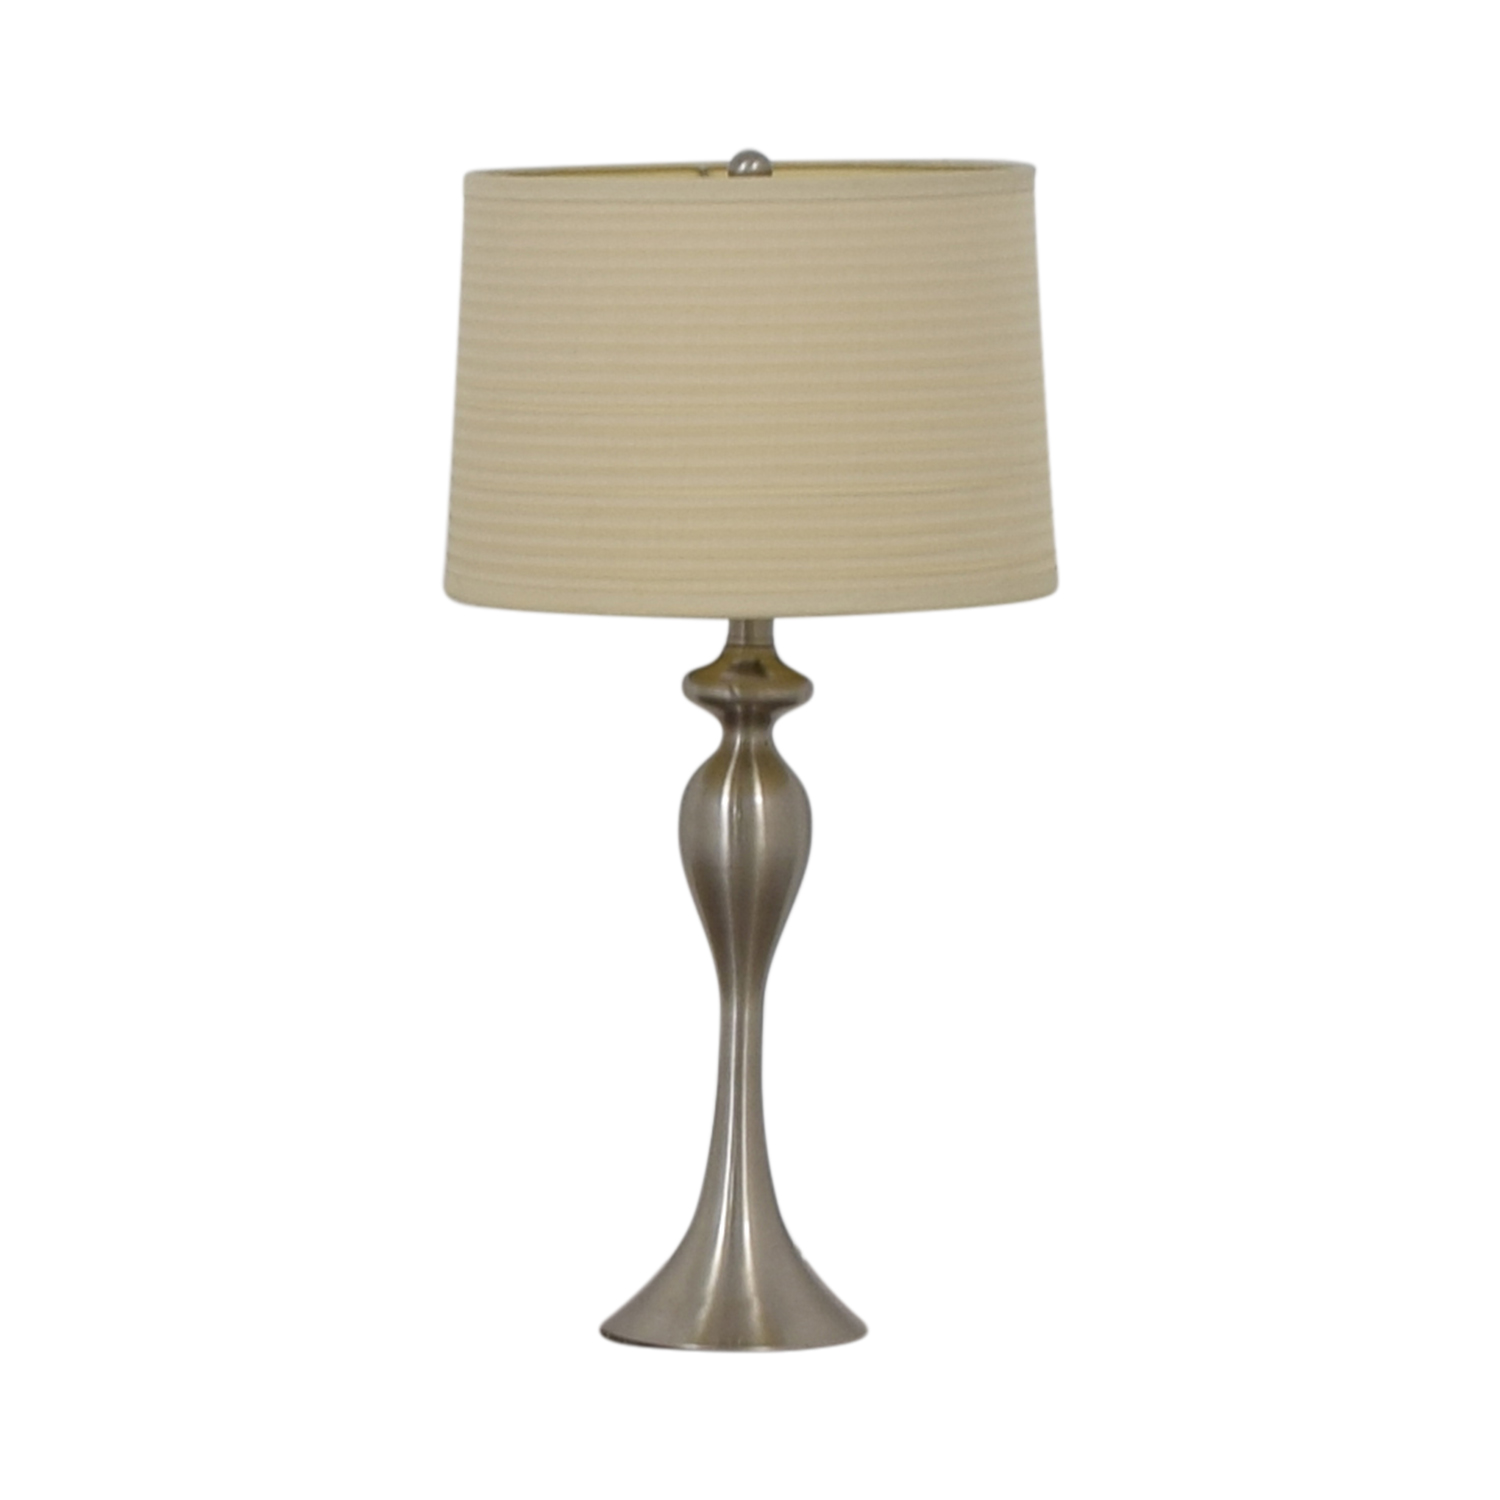 Crate & Barrel Crate & Barrel Table Lamp used